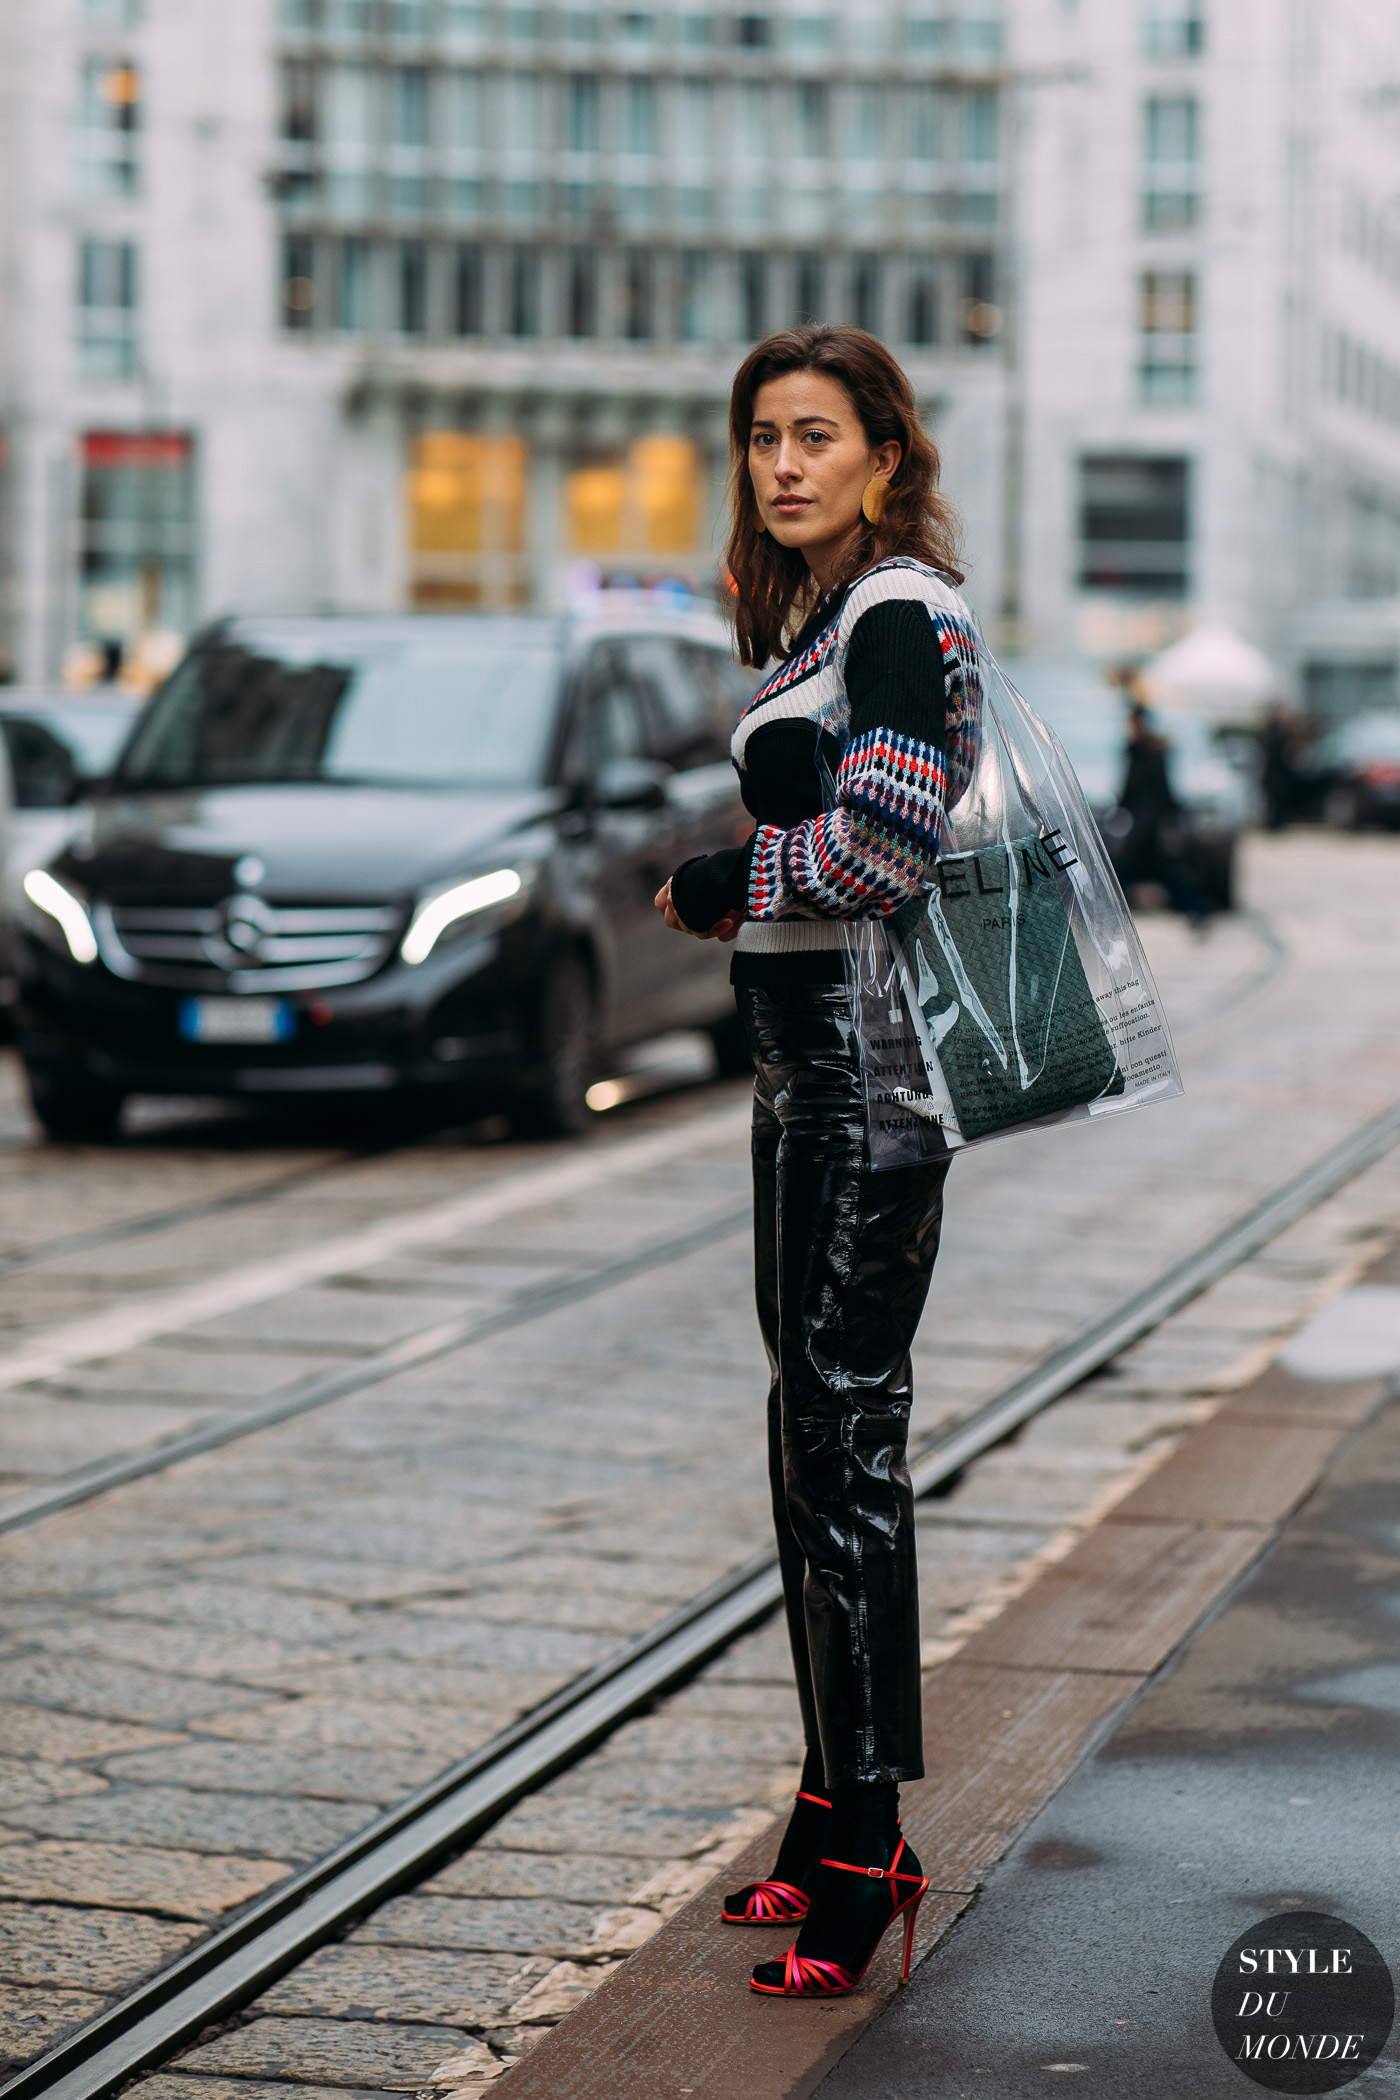 Sylvia Haghjoo by STYLEDUMONDE Street Style Fashion Photography FW18 20180223_48A6698